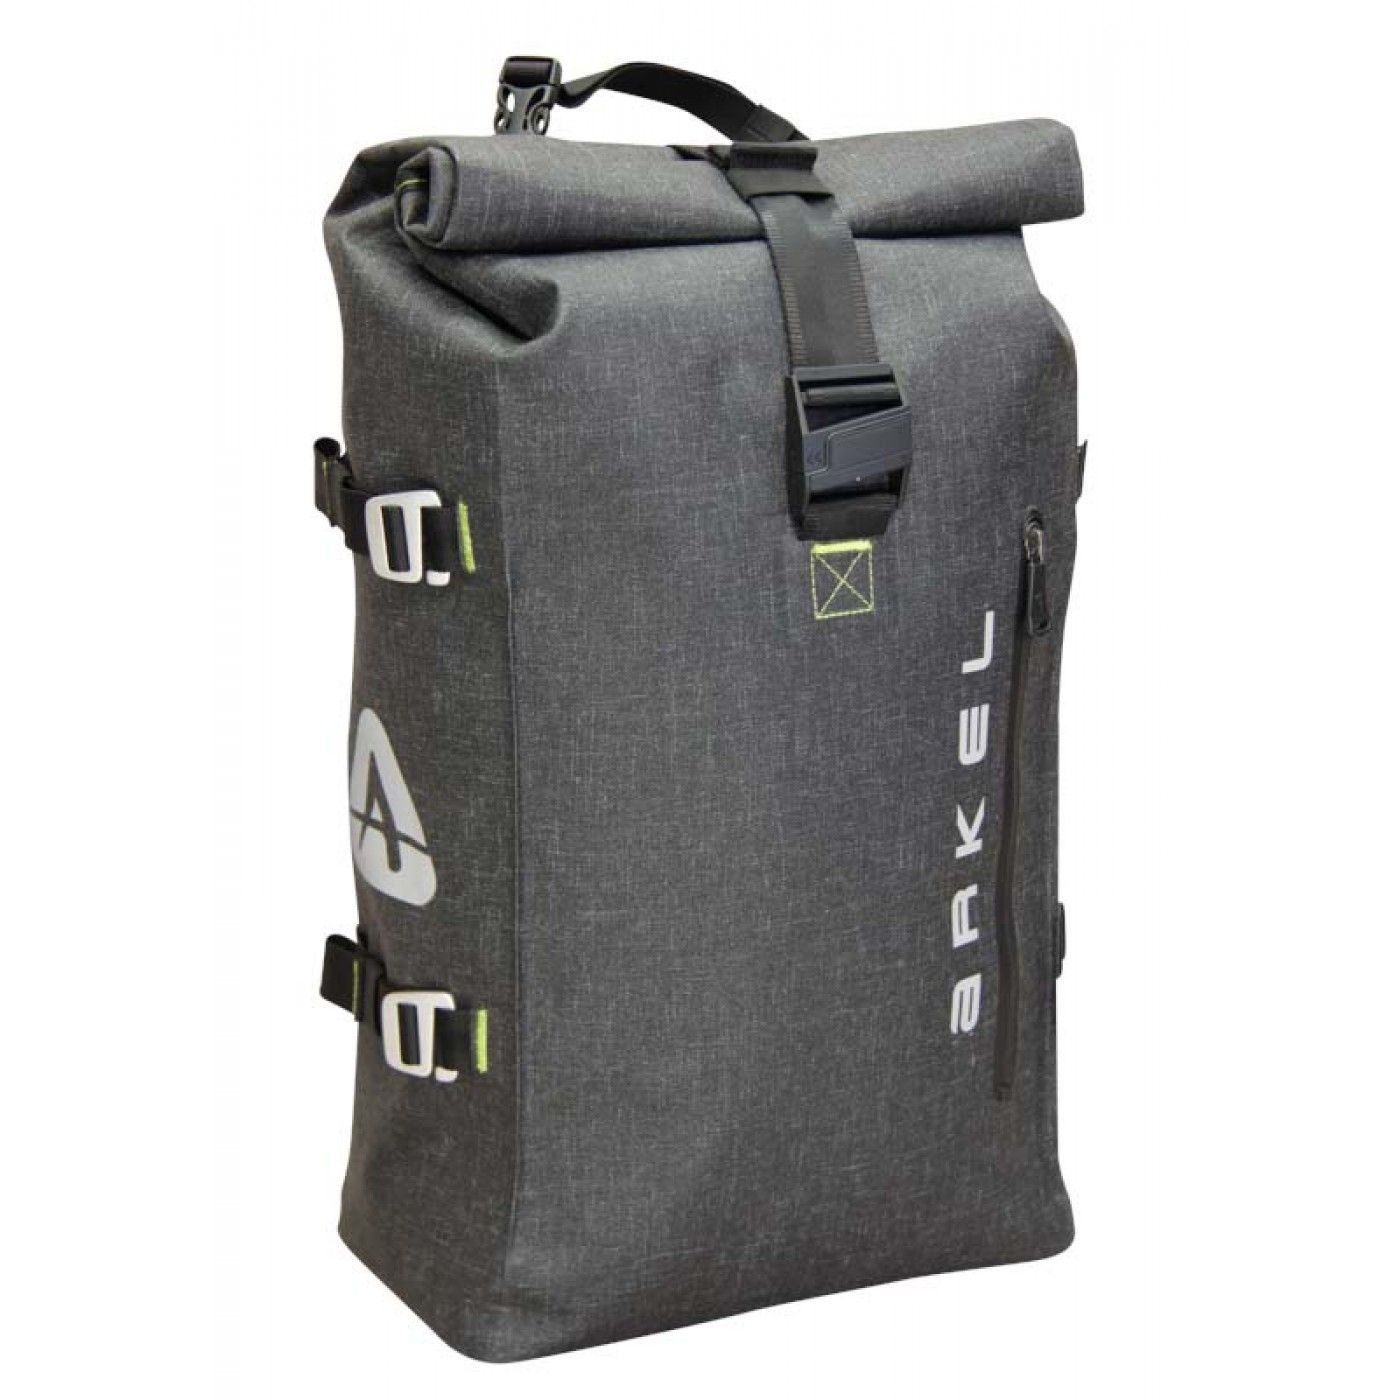 Ortlieb Commuter City Daypack | Commuter bag, Cycling